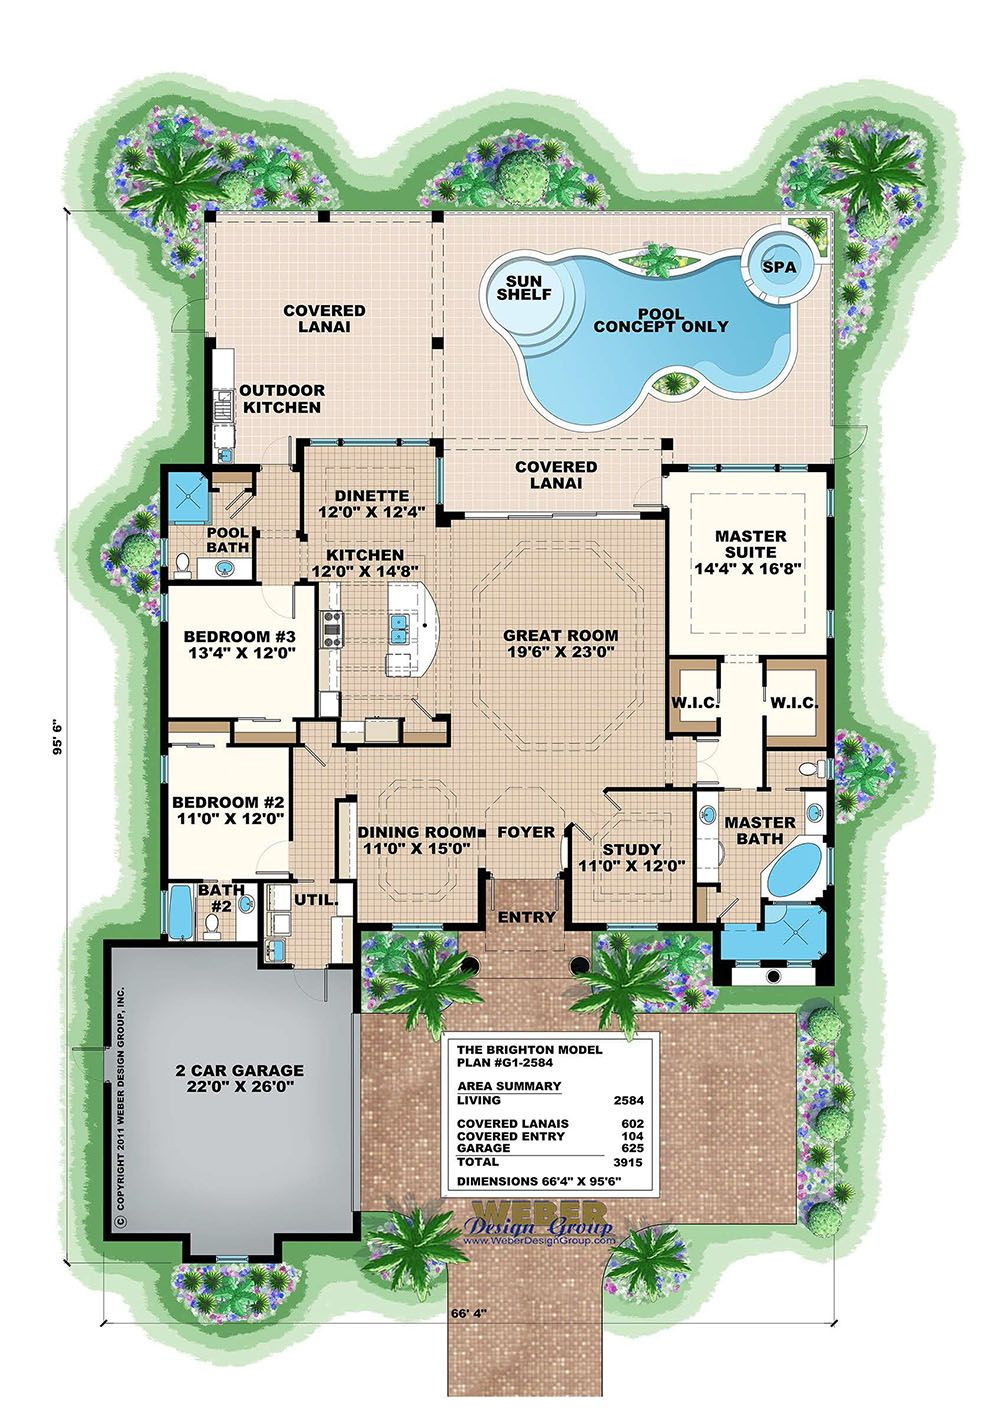 Mediterranean House Plan Small Home Floor Plan With Swimming Pool Mediterranean Style House Plans Small House Floor Plans Mediterranean Homes